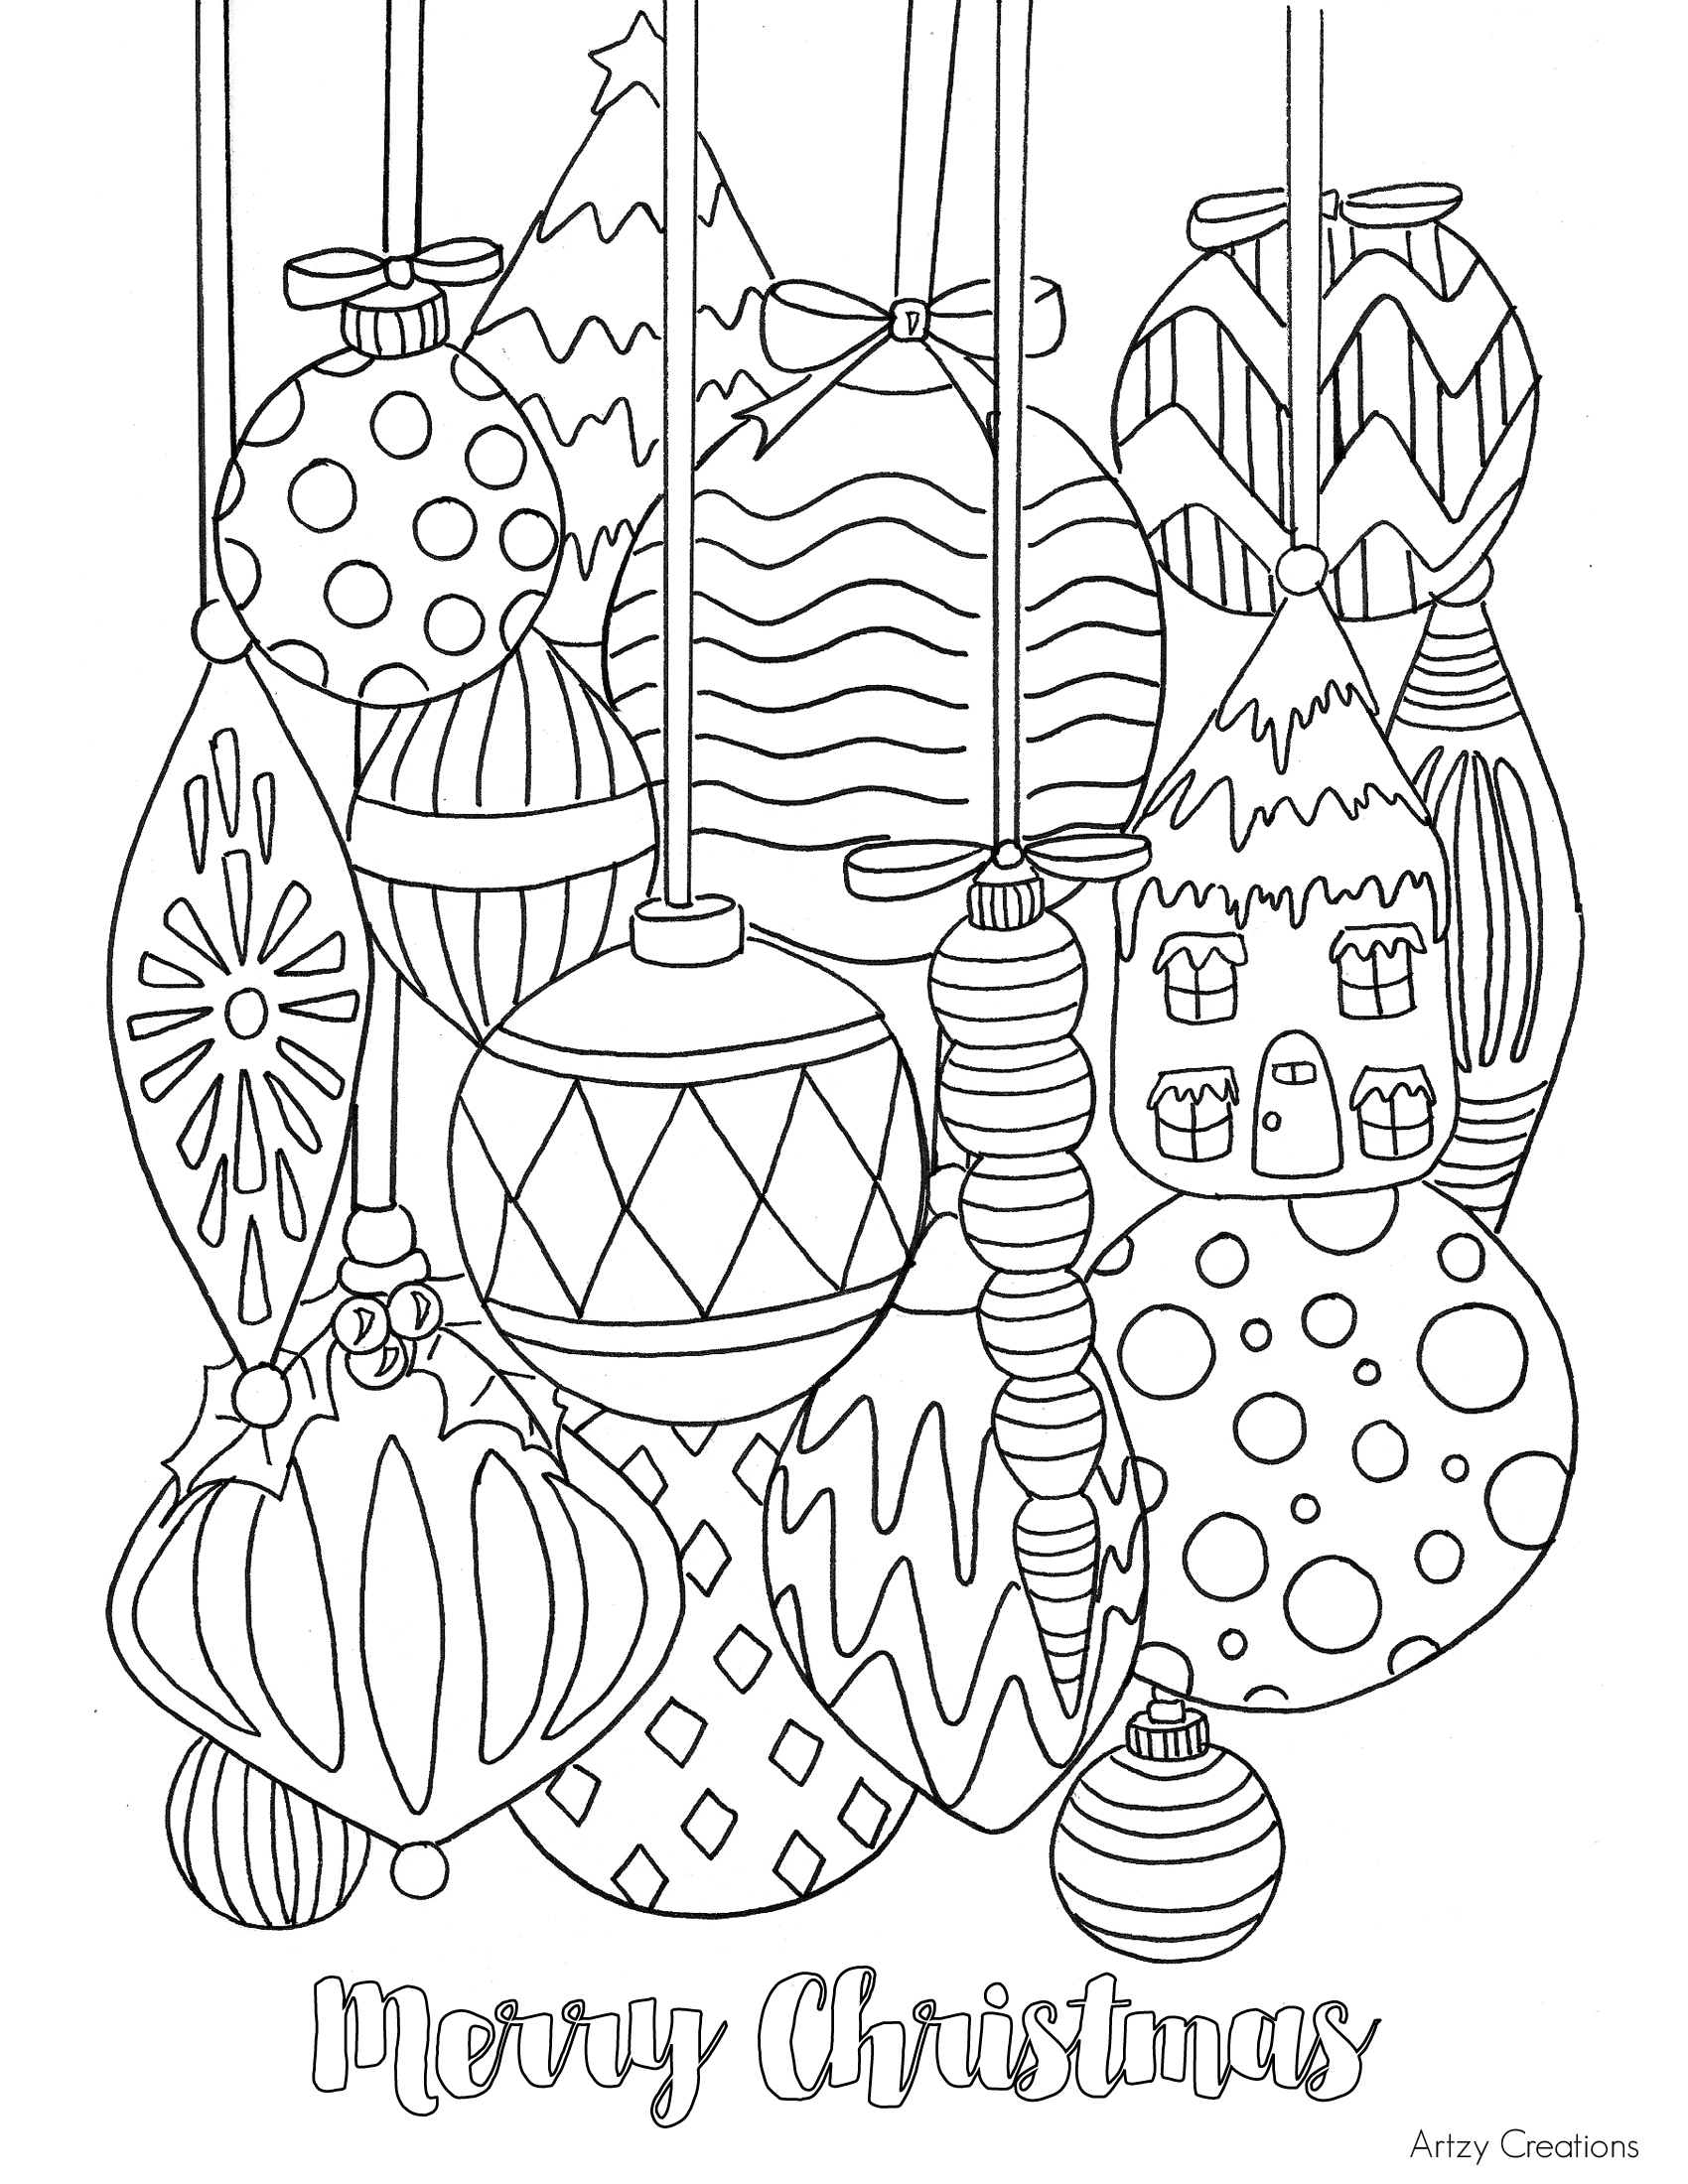 free christmas ornament coloring page tgif this grandma is fun. Black Bedroom Furniture Sets. Home Design Ideas